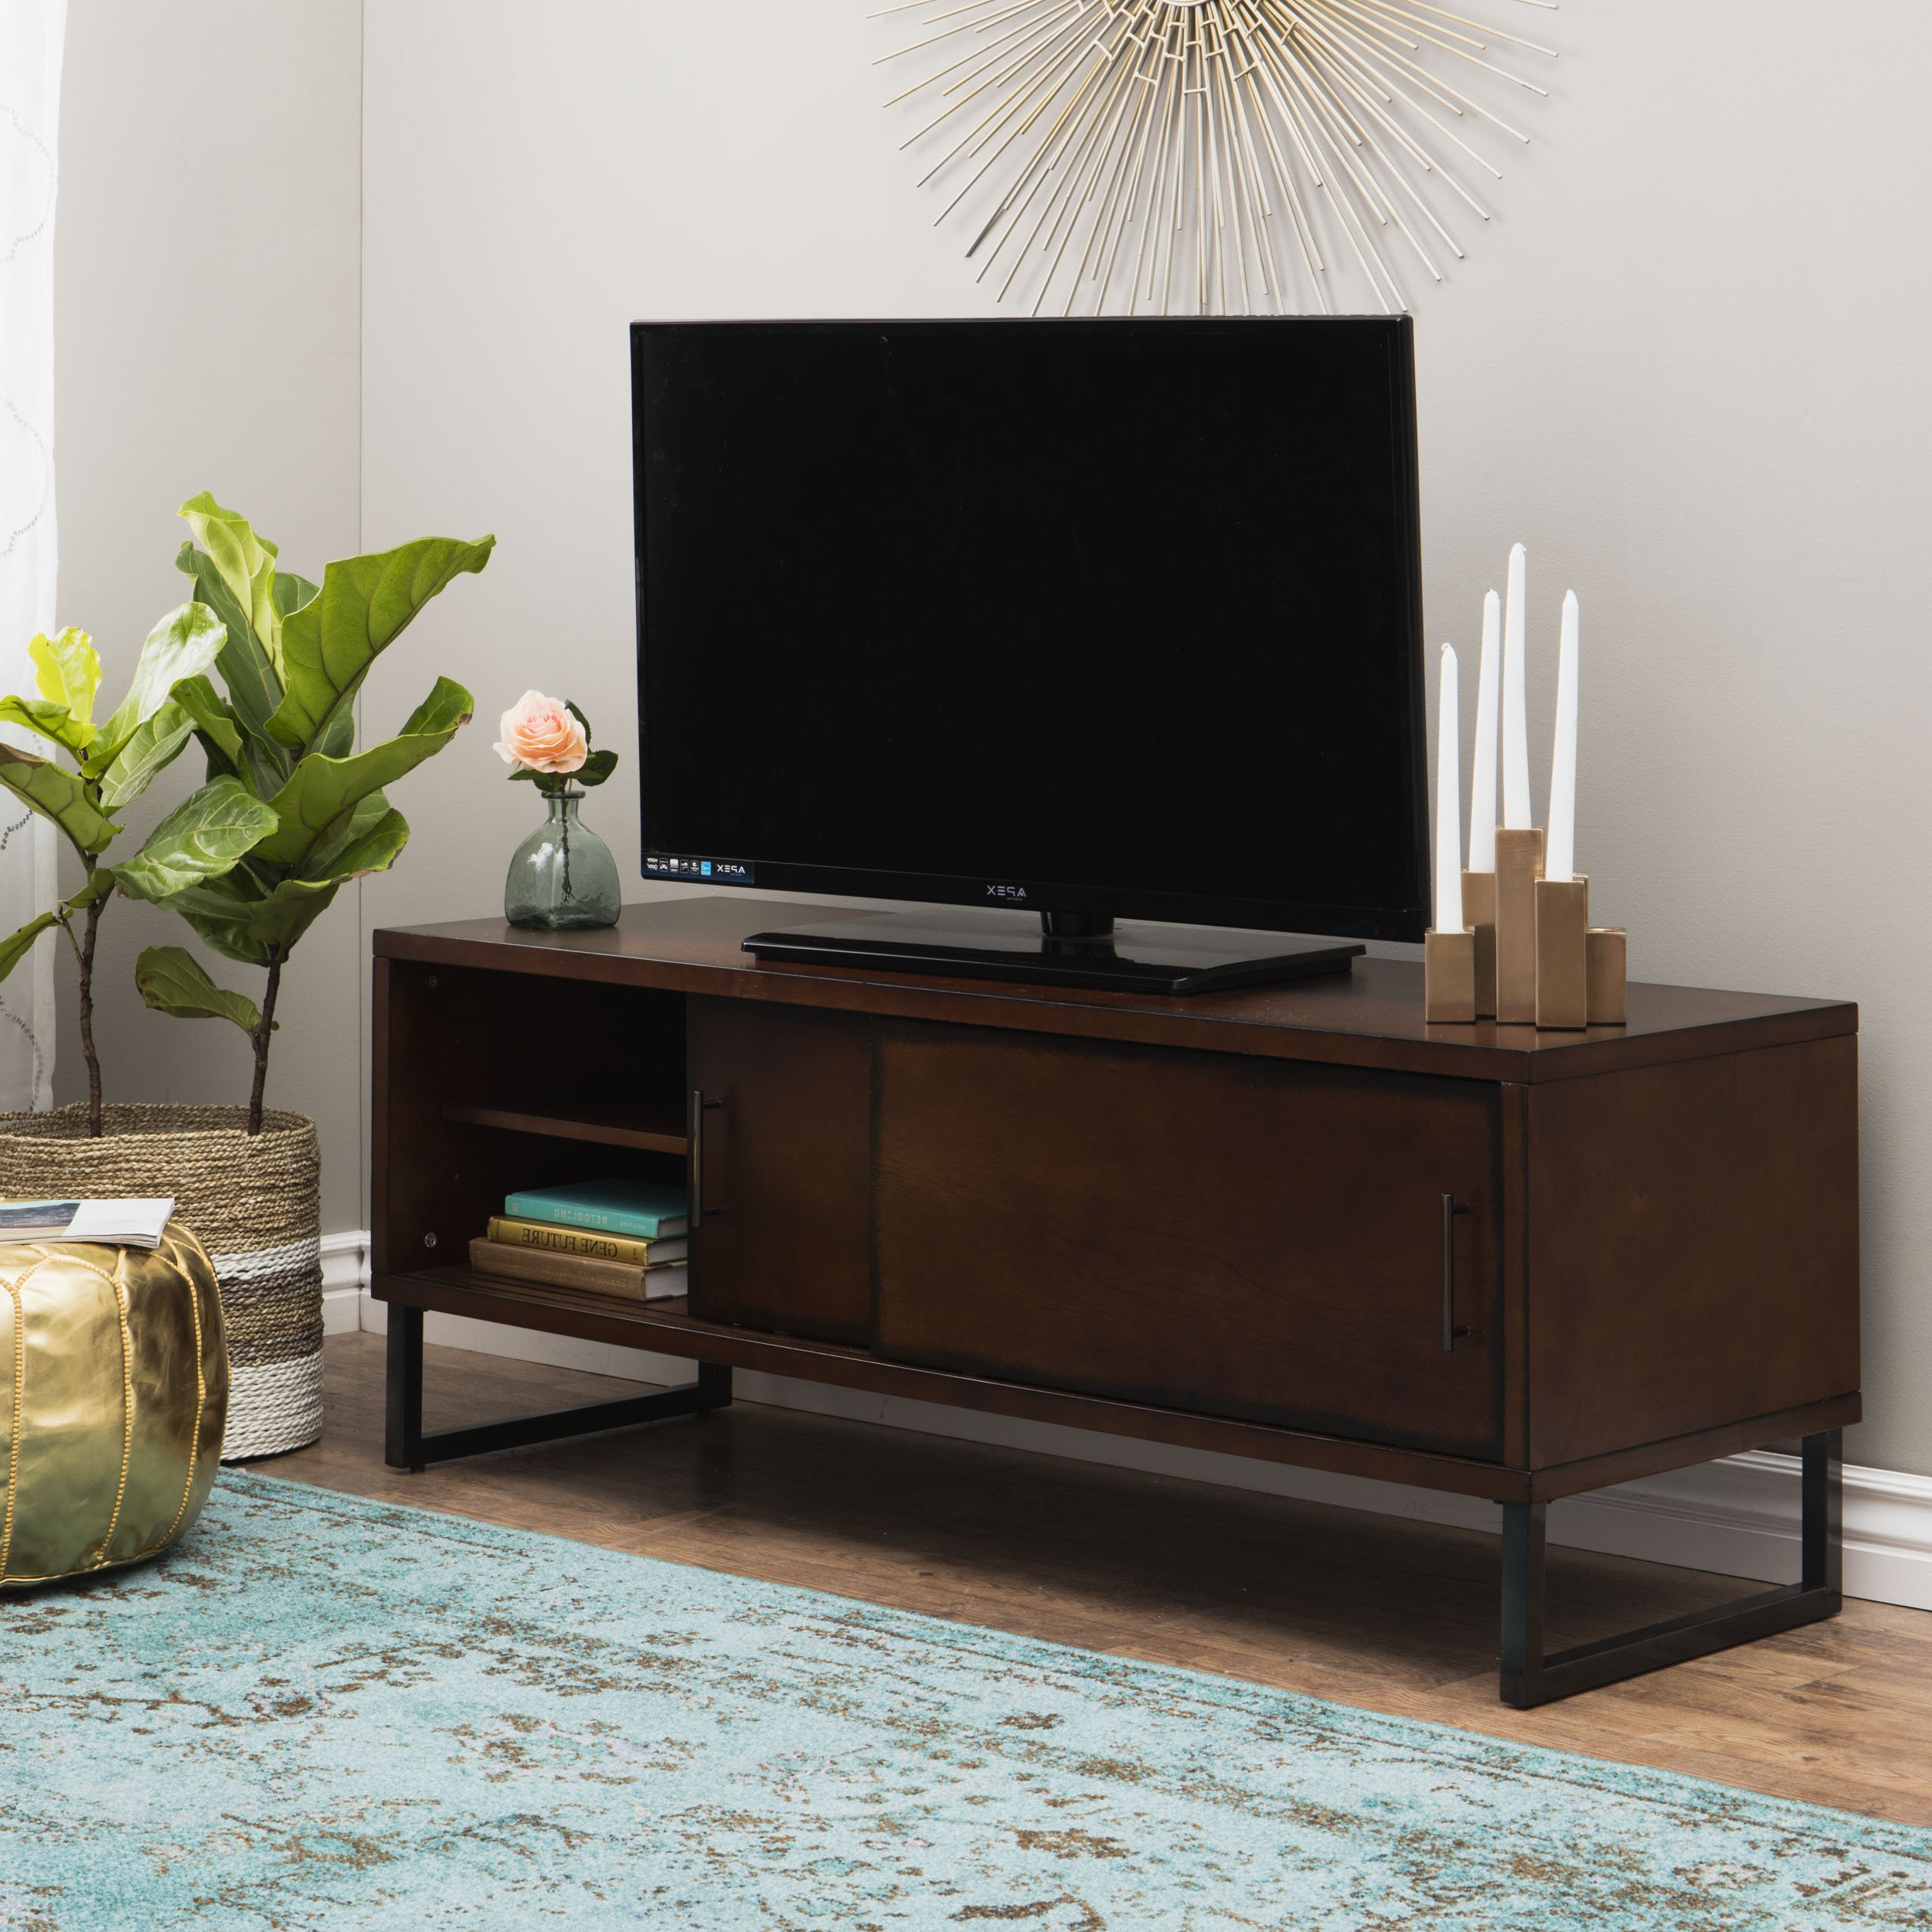 Shop Carbon Loft 54 Inch Breckenridge Walnut Entertainment Center Throughout Canyon 54 Inch Tv Stands (Gallery 14 of 20)